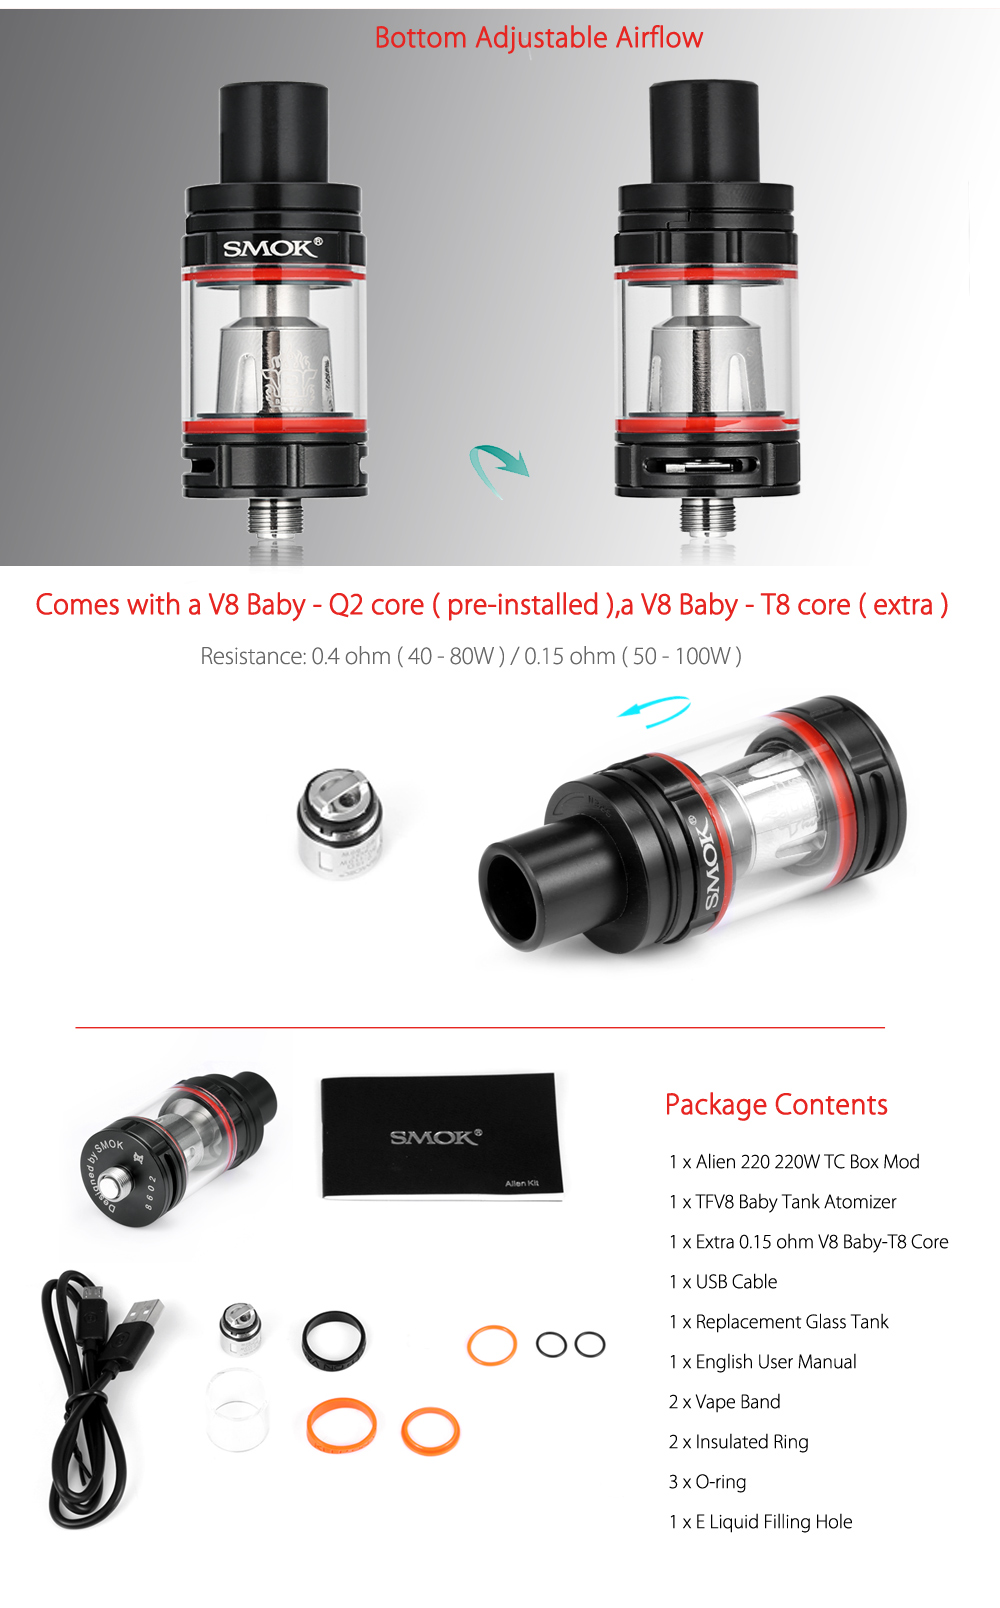 Original SMOK Alien Kit with 220W / 200 - 600F / 100 - 315C TC Box Mod / 3.0ml / 0.15ohm / 0.4ohm TFV8 Baby Tank Atomizer for E Cigarette